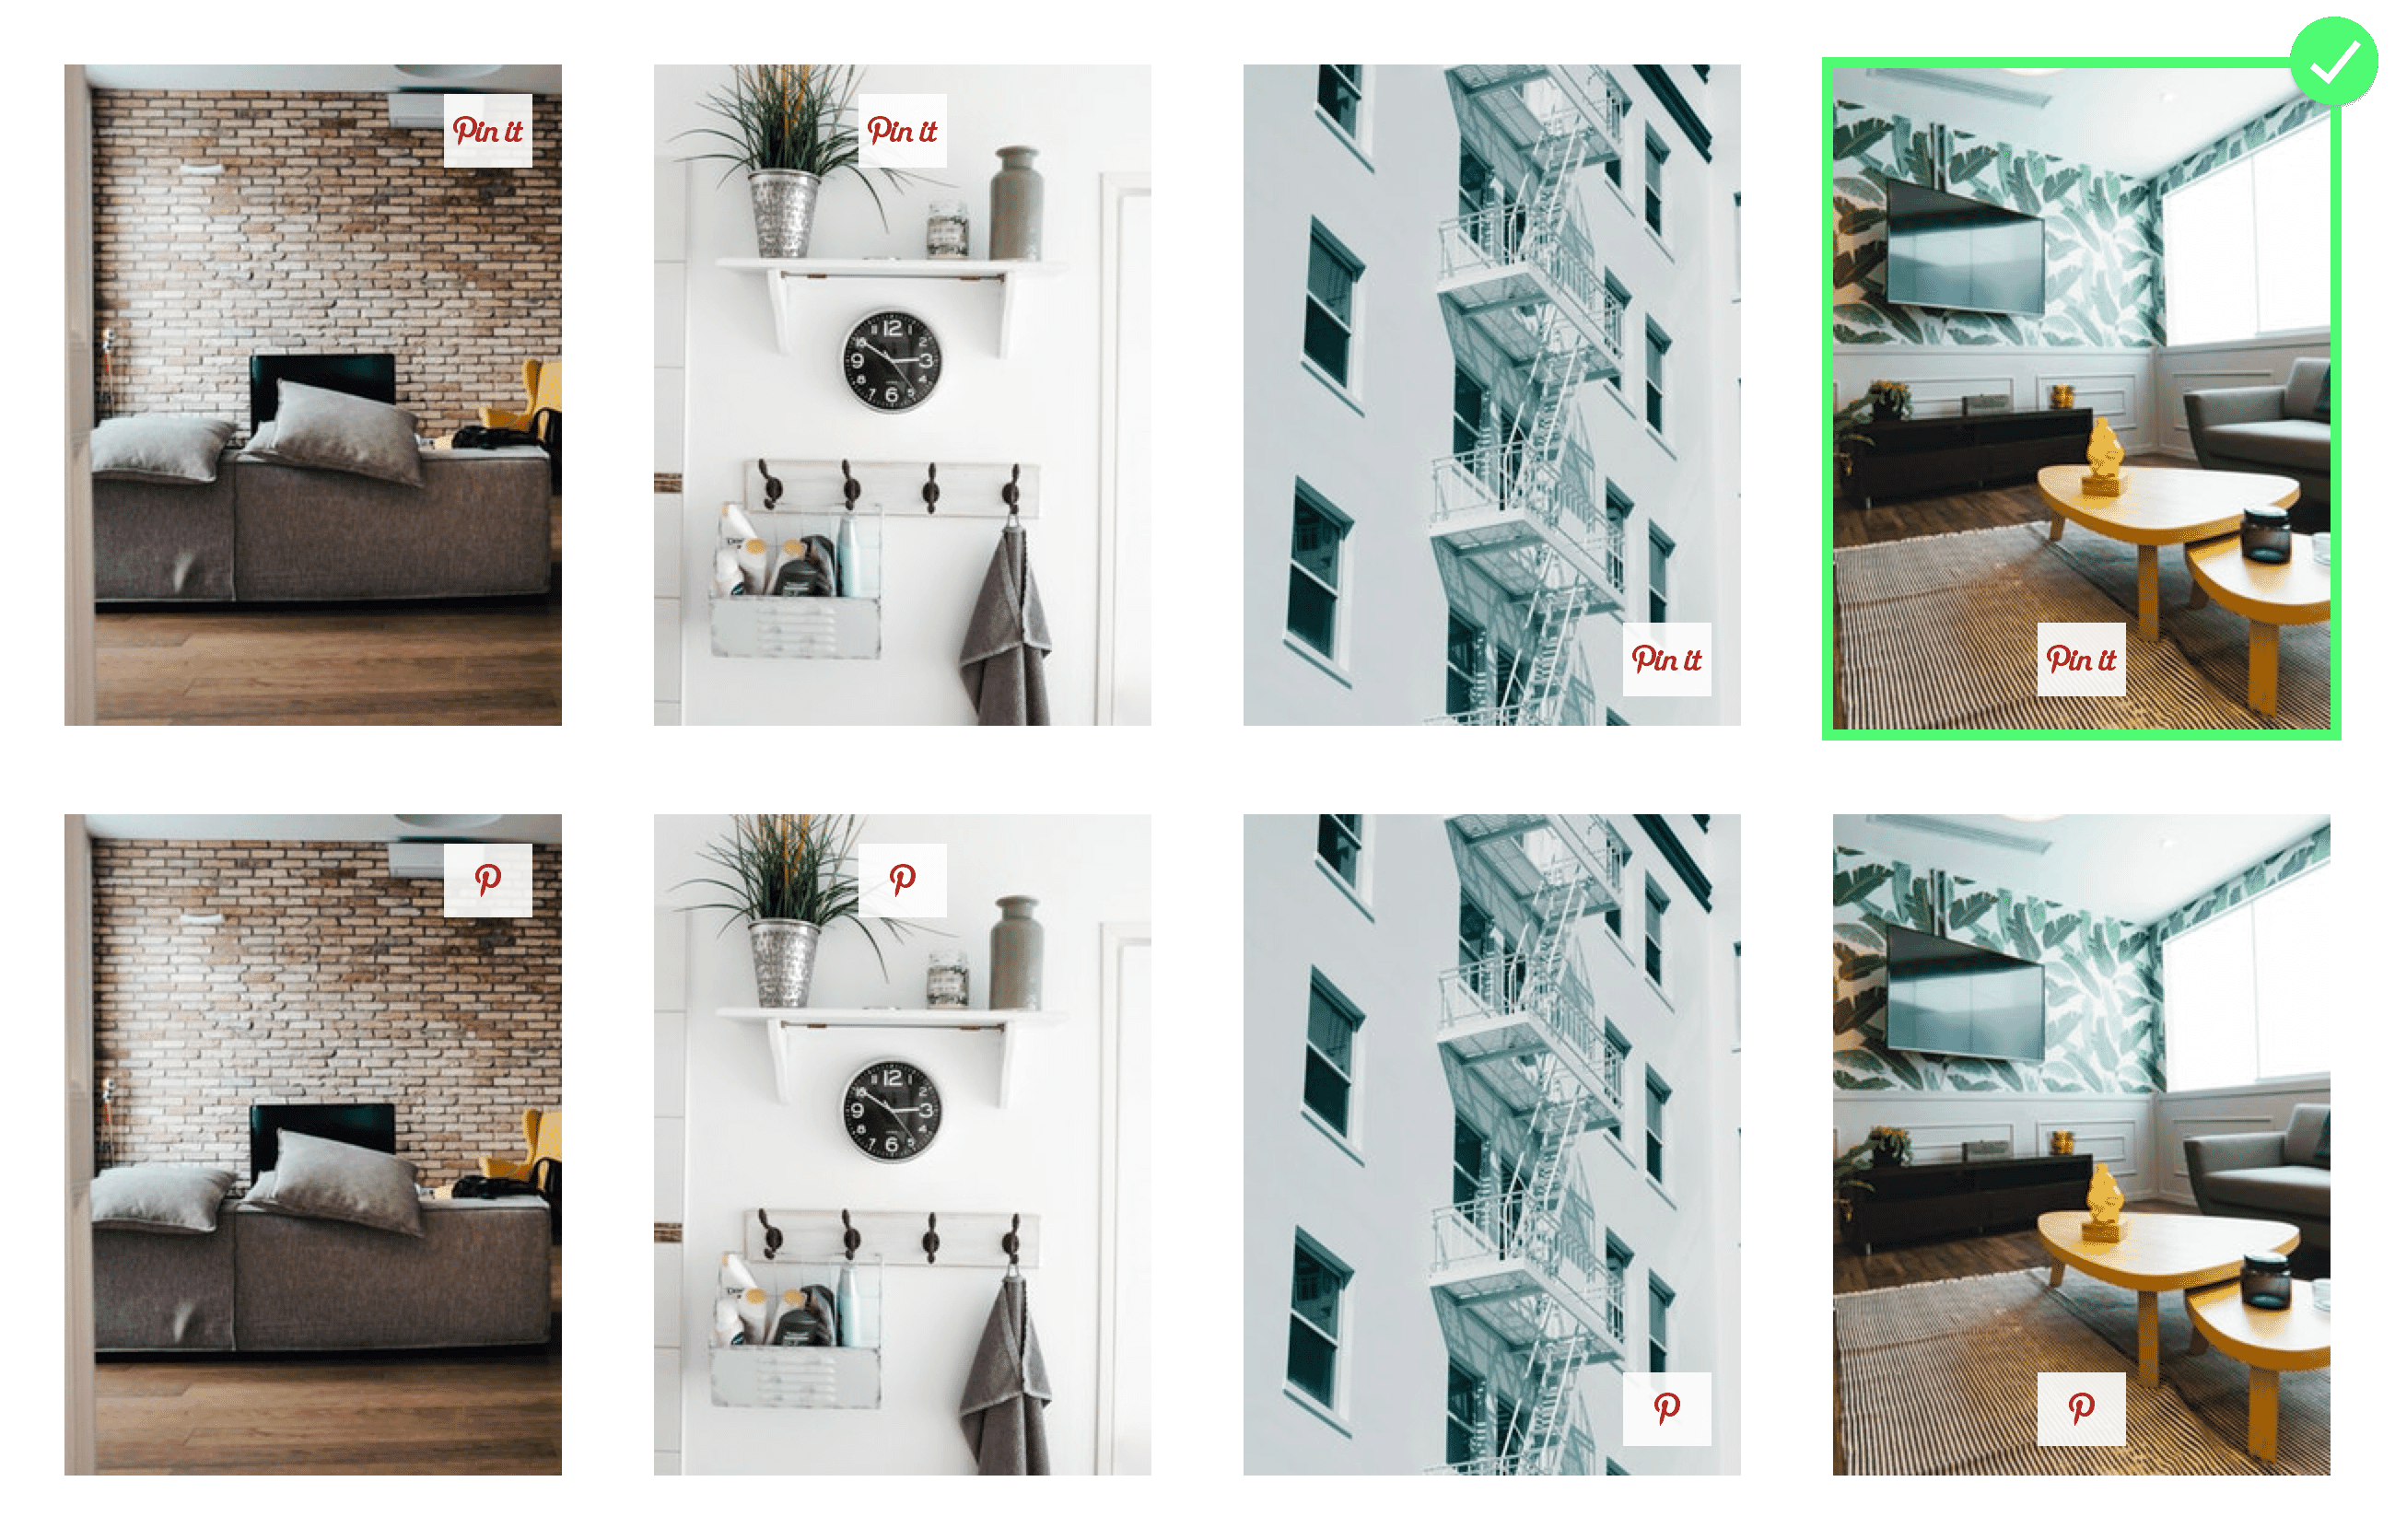 8 photos with icons for Pinterest with a green checkmark on the 'winning' option